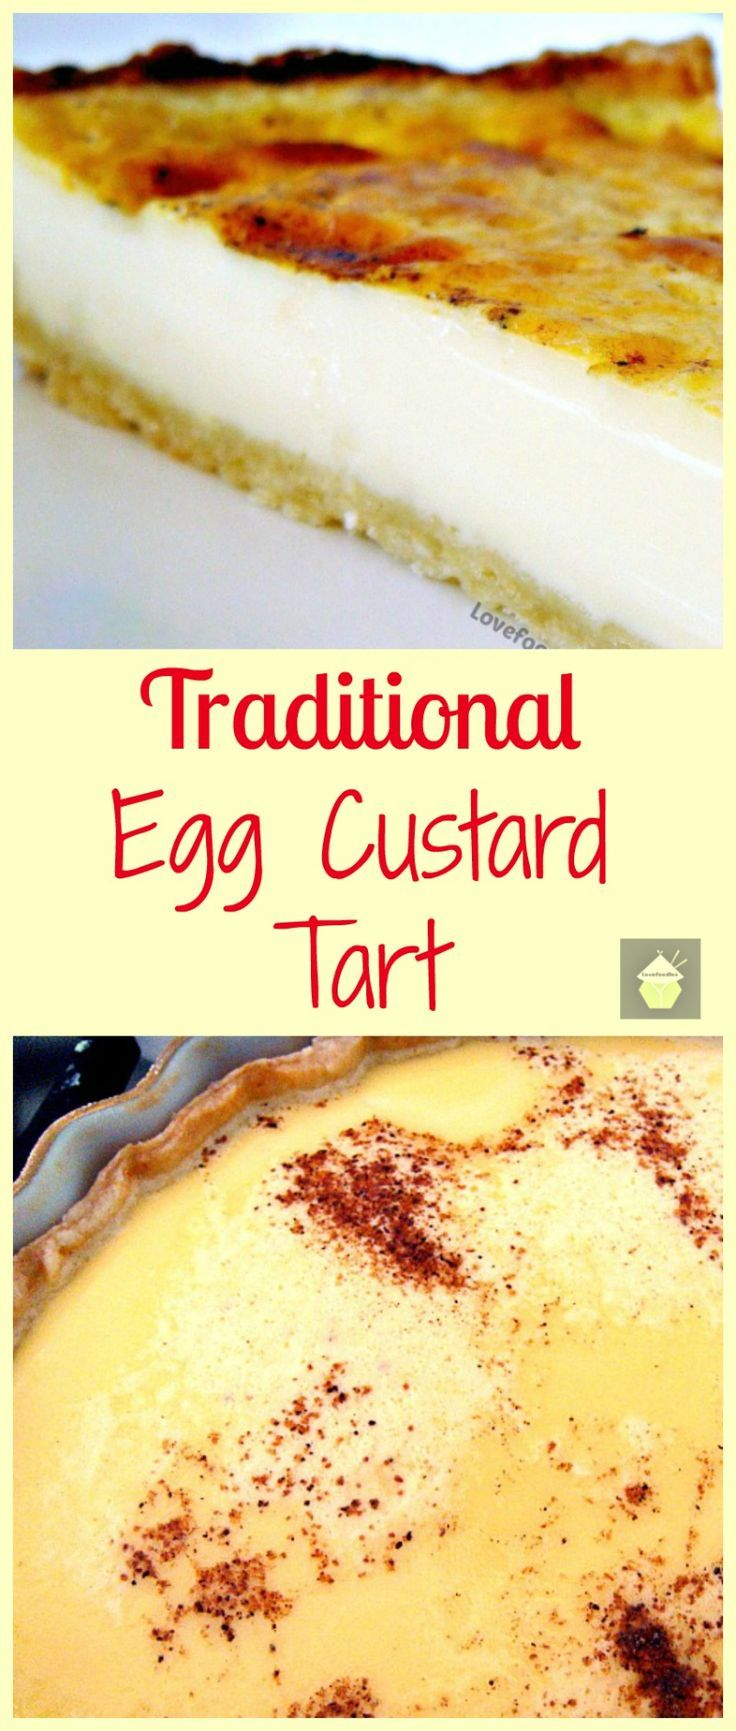 Traditional Egg Custard Tart: Perfect Easter dessert with a lovely home made pastry and a very silky smooth filling. Serve warm or chilled...You can also make mini ones in a muffin pan if you prefer!